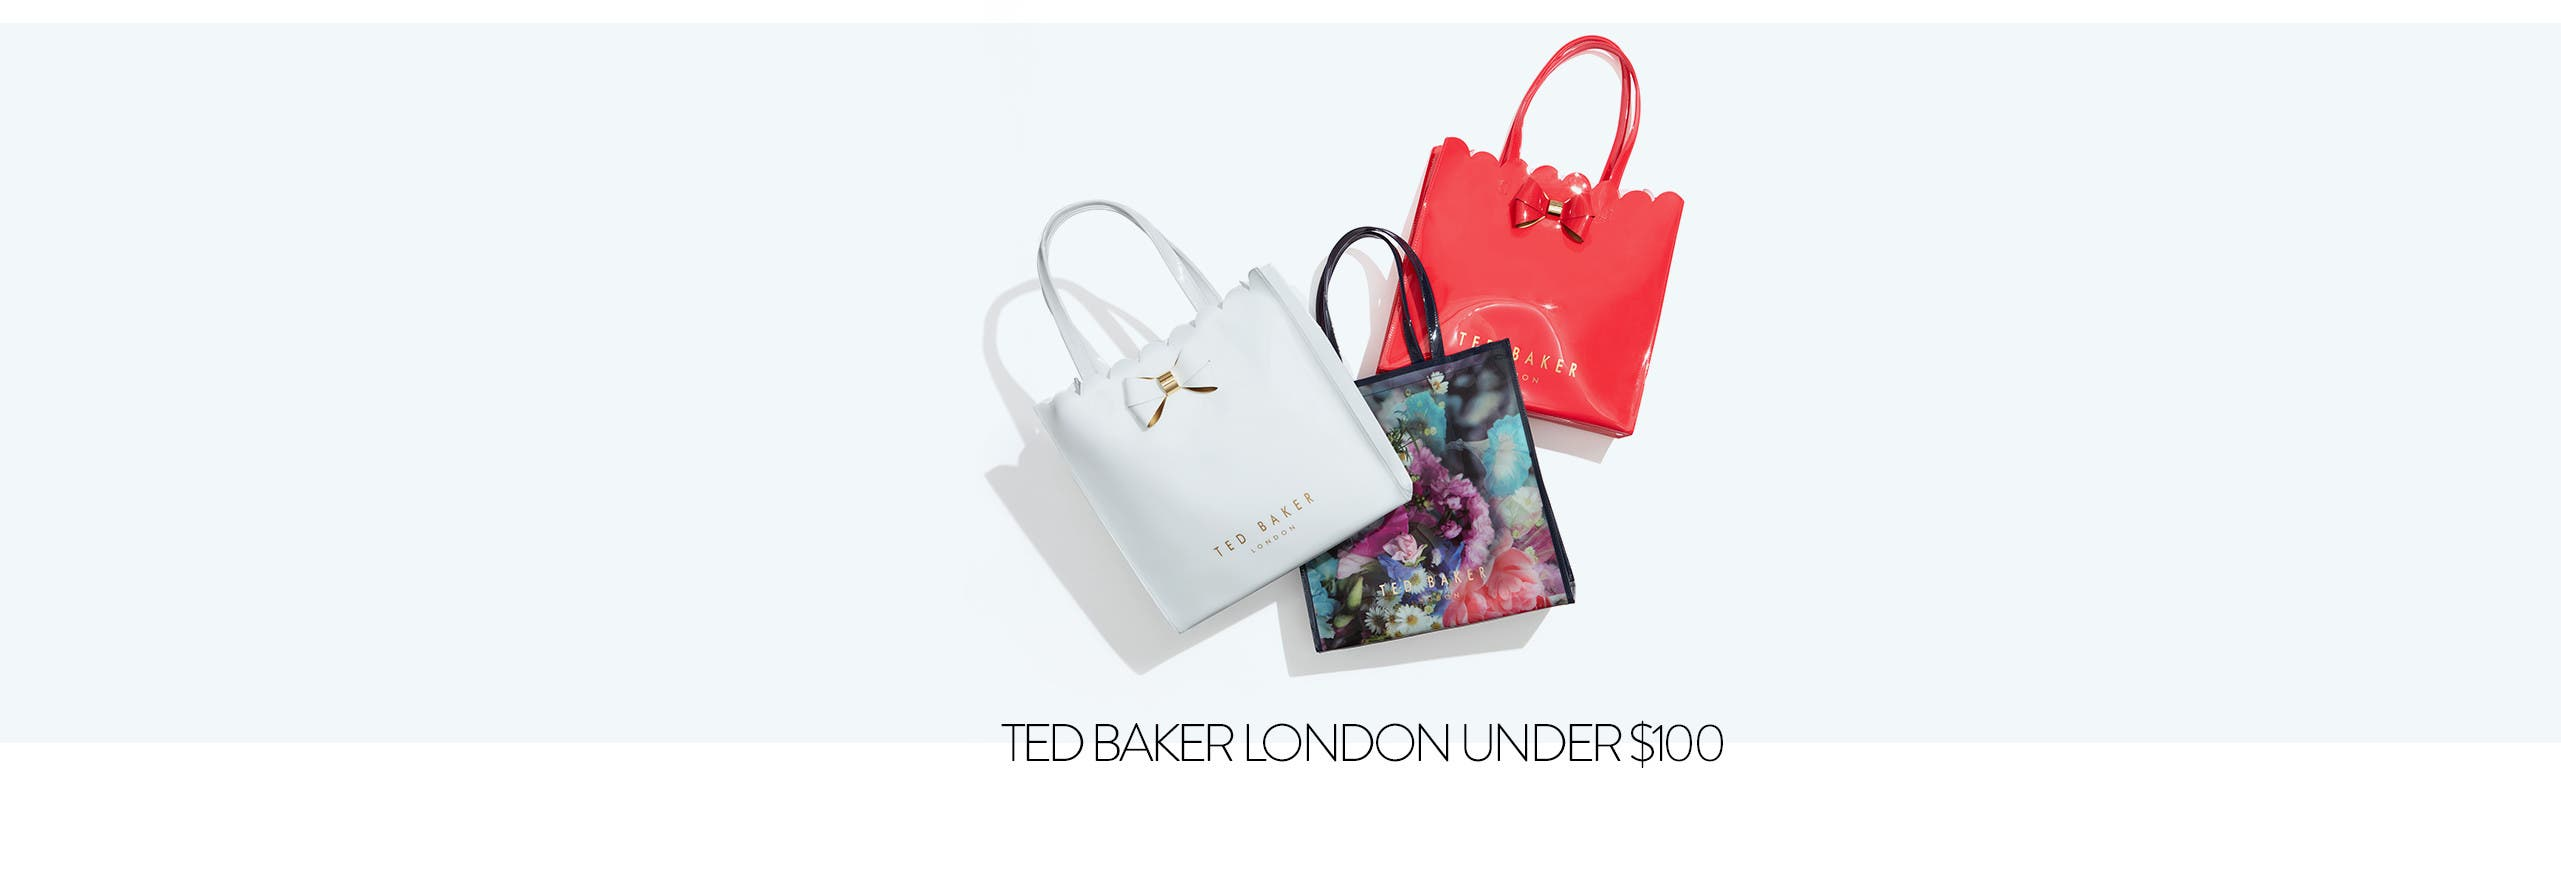 Ted Baker bags under $100